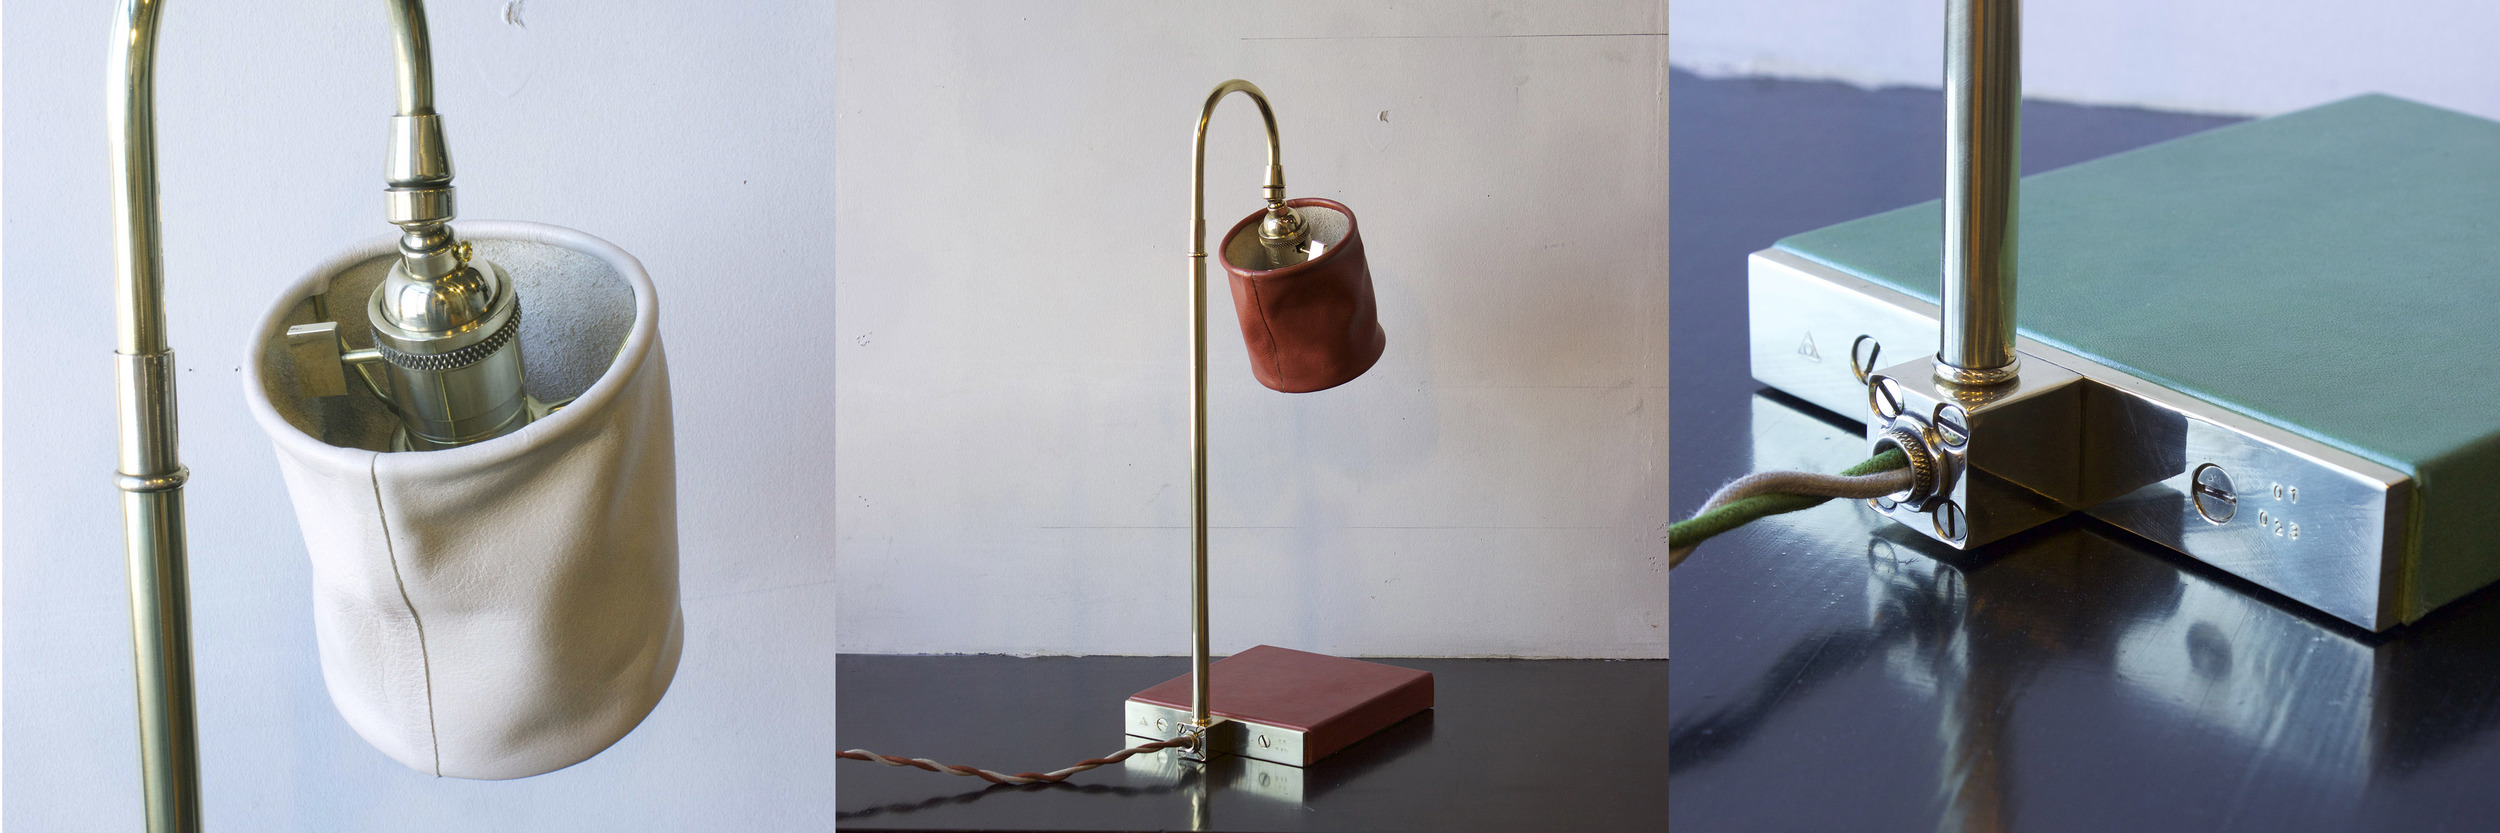 Series 01 desk lamps,  2015.